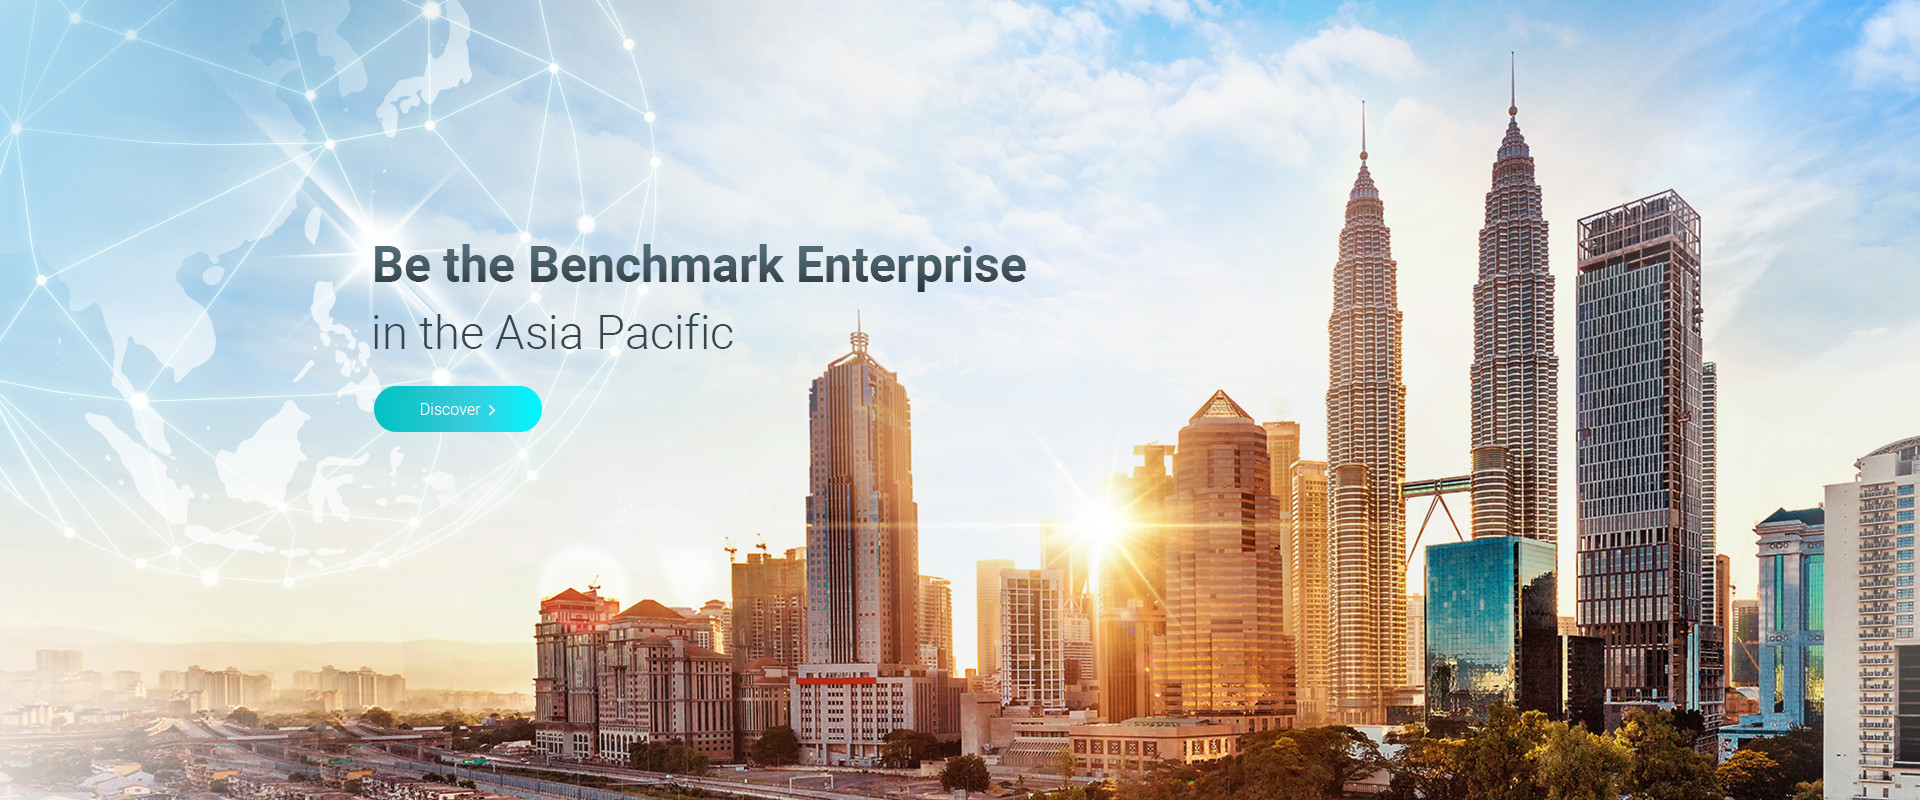 Be the Benchmark Enterprise in the Asia Pacific